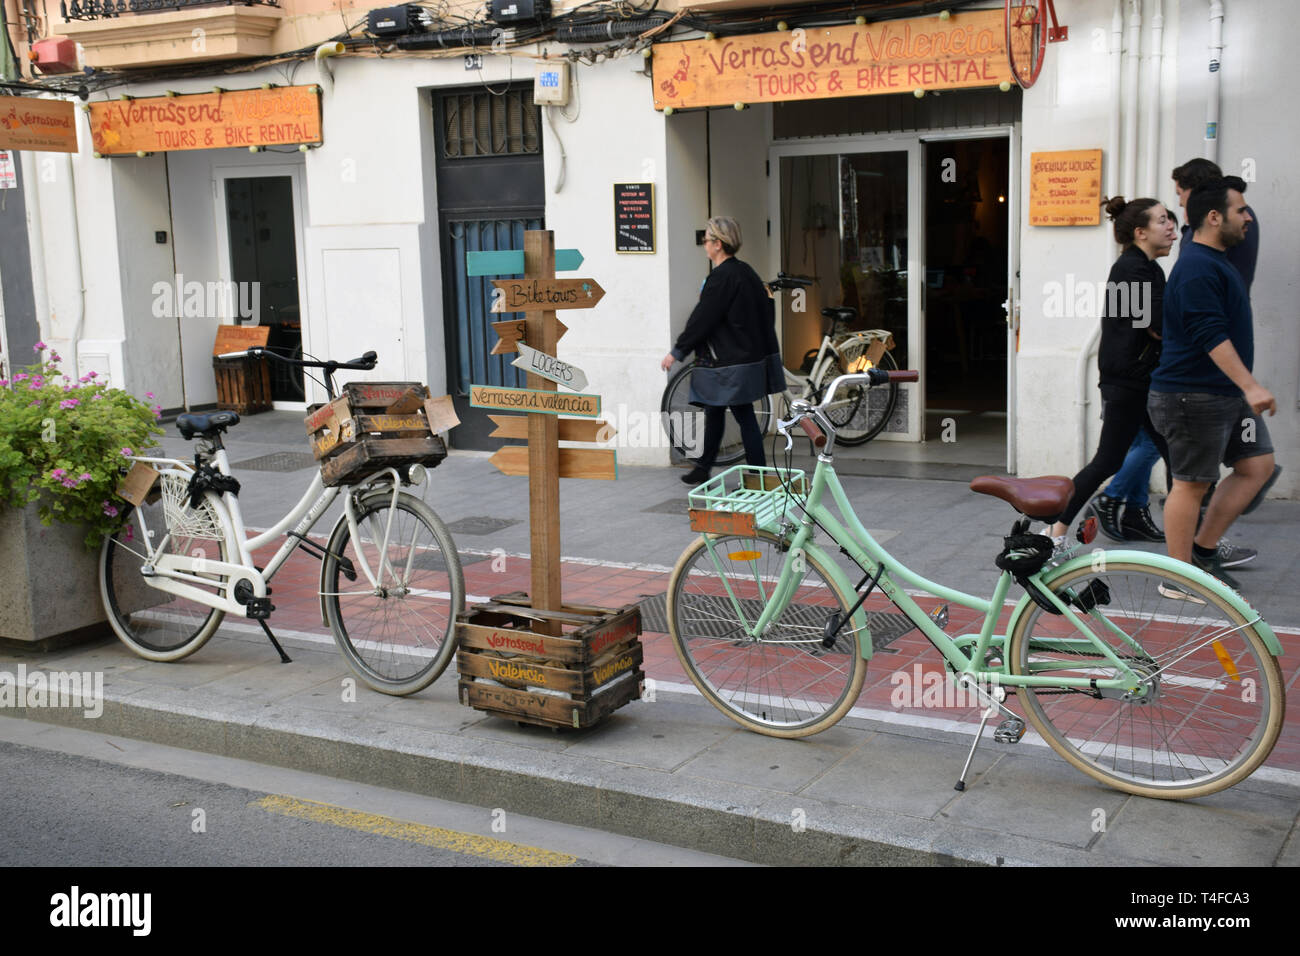 Bike hire shop, Ruzafa, Valencia, Spain 2019 Stock Photo